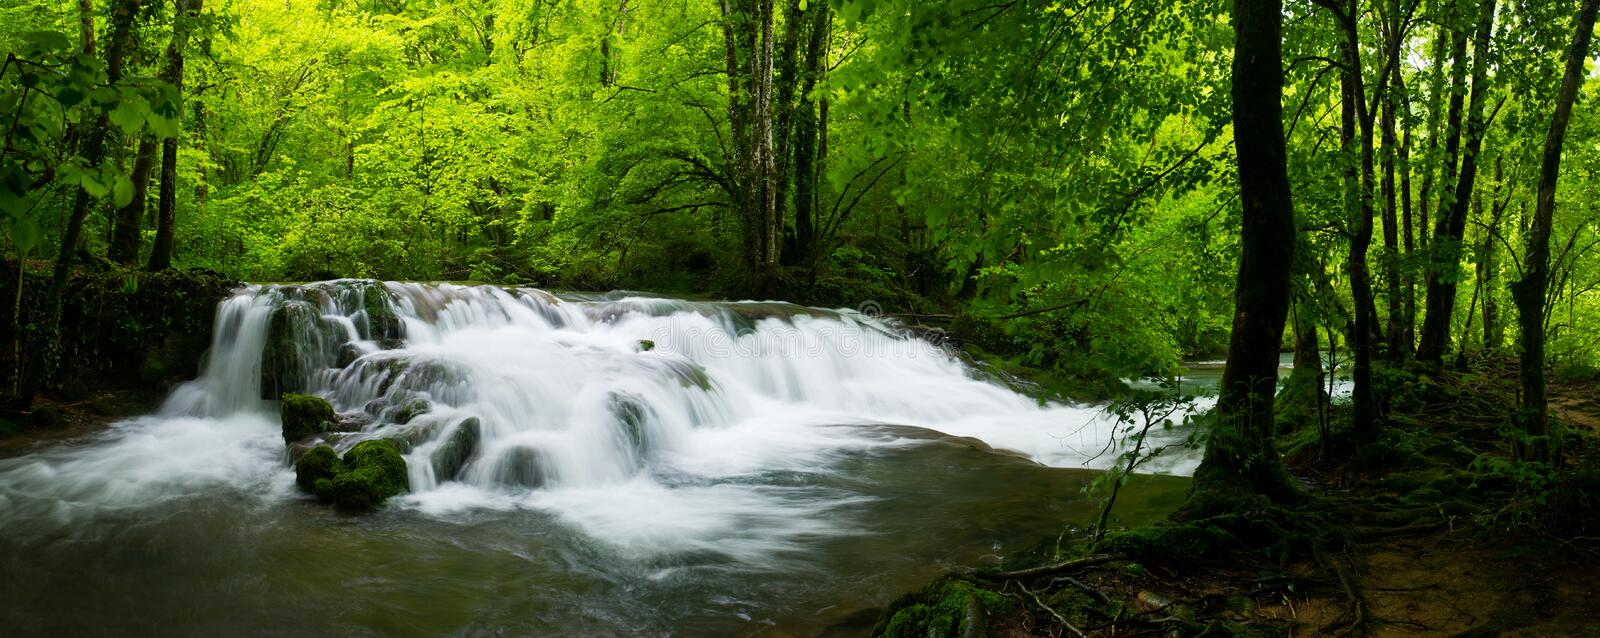 Panoramic view of the beautiful wild brook in jungle-like forest stock images